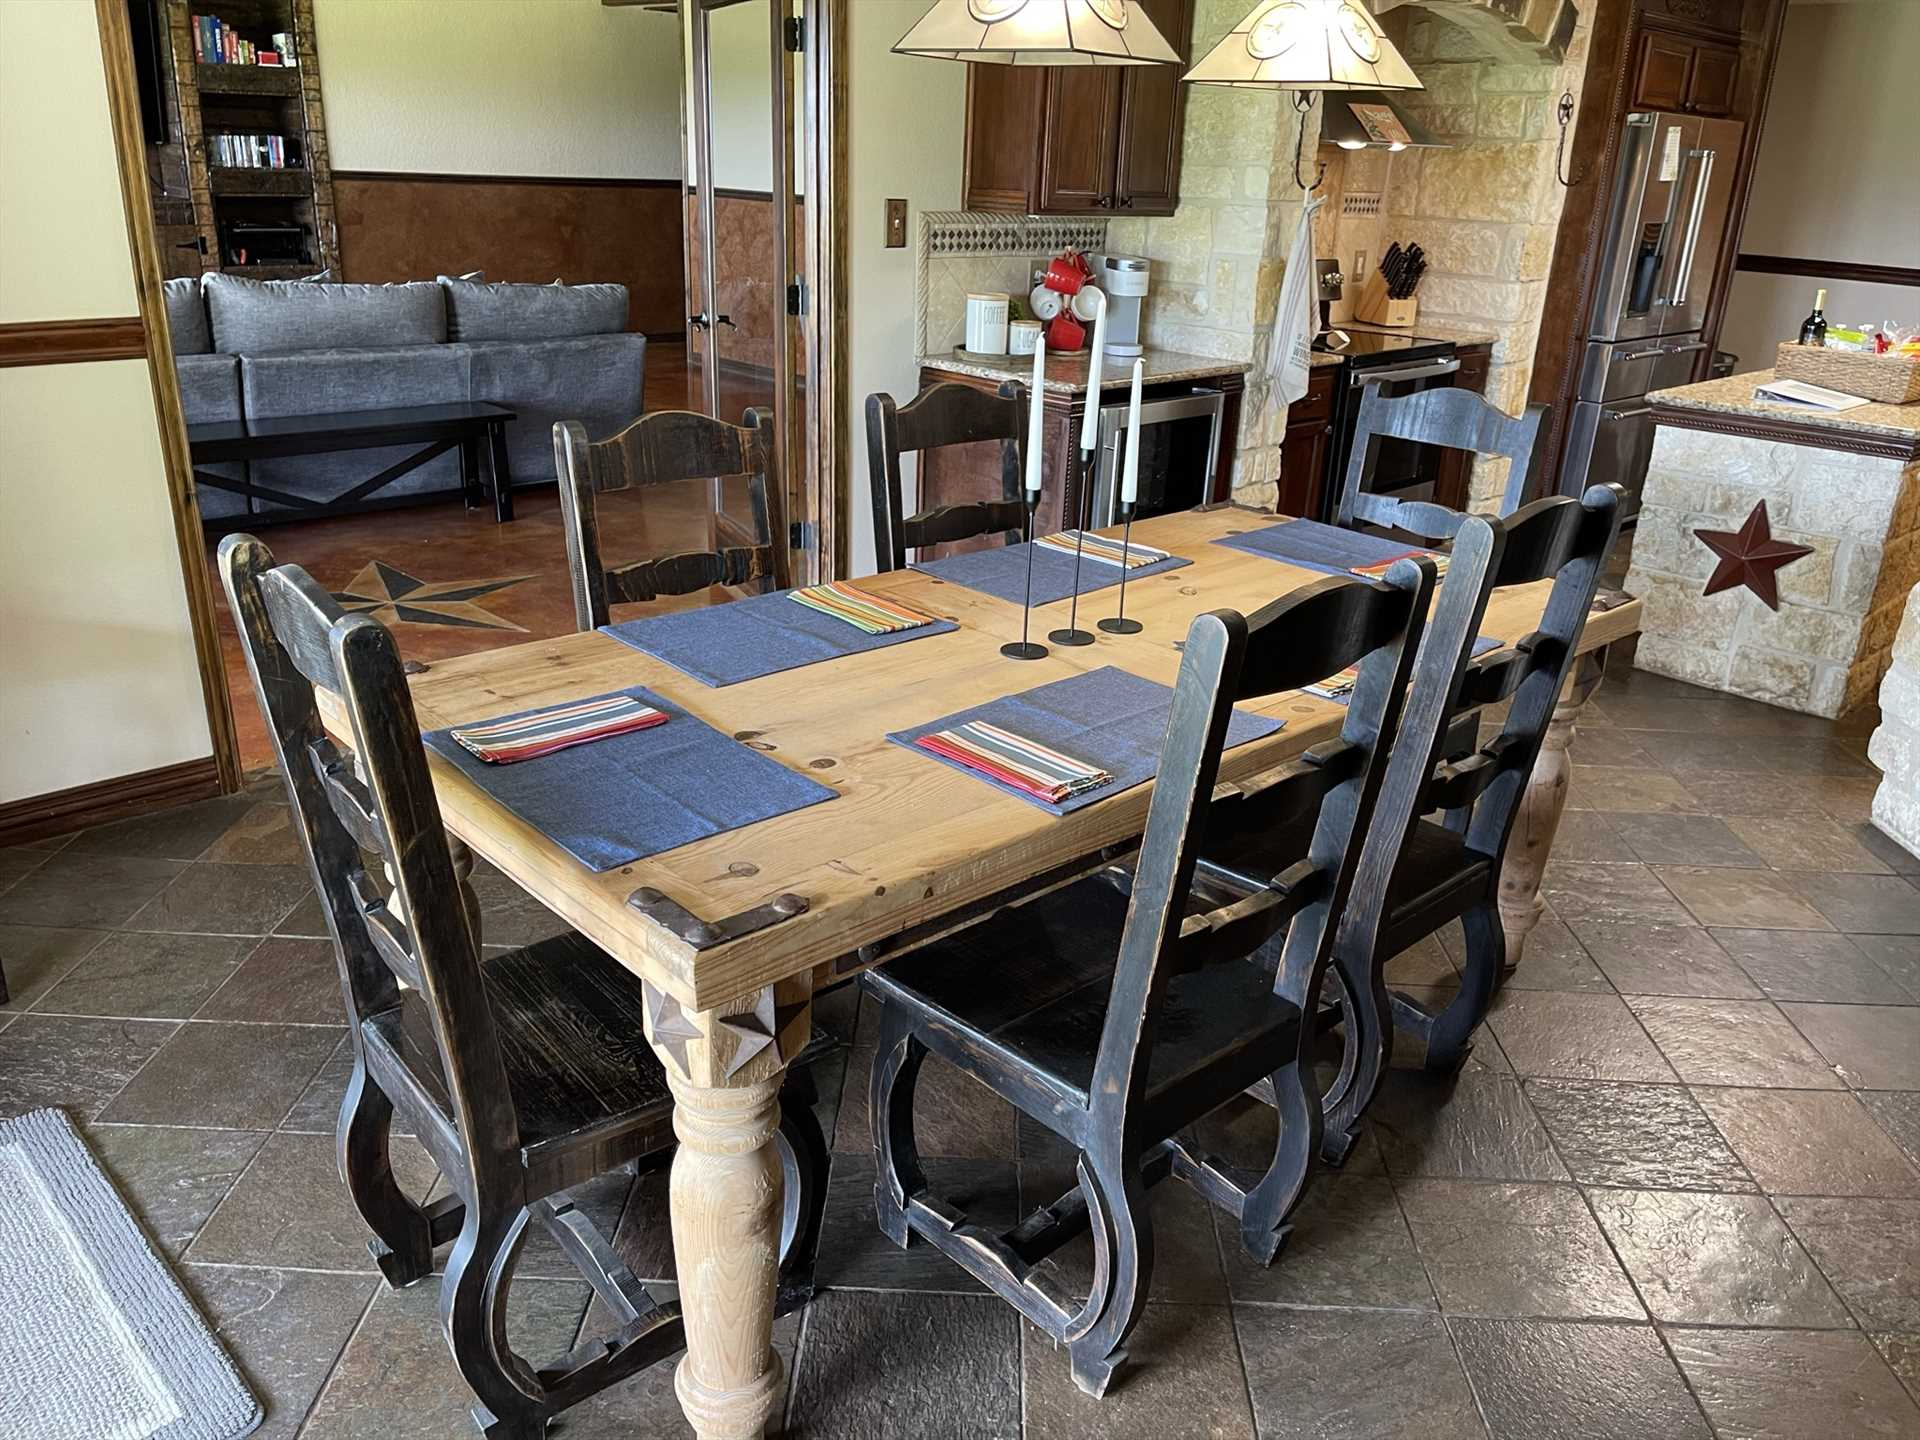 Ample seating space with tasteful country touches make the dining area a wonderful place to gather.